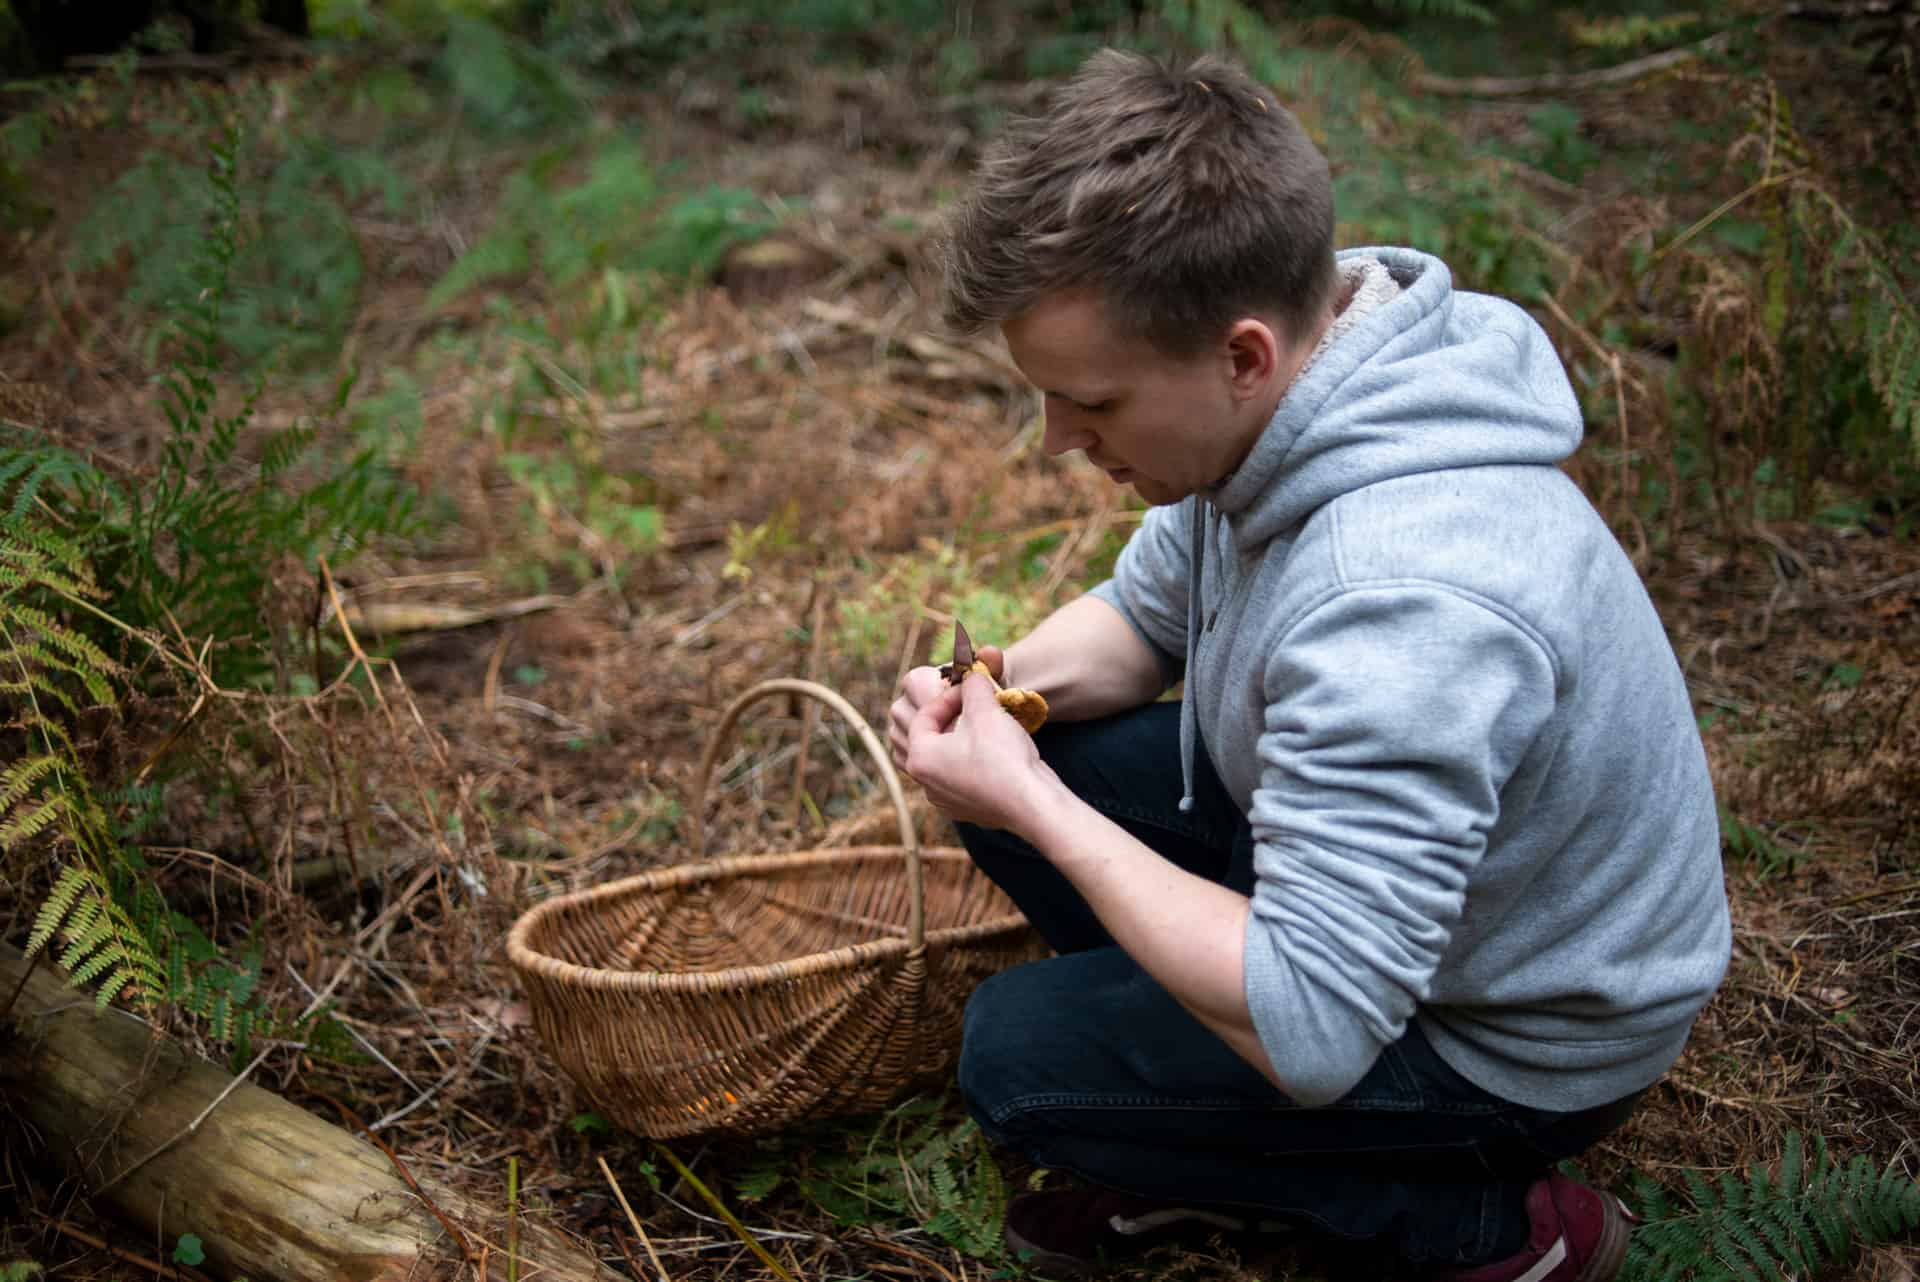 Foraging for mushroom - Documentary Photography by Chris King for Open Eye Media